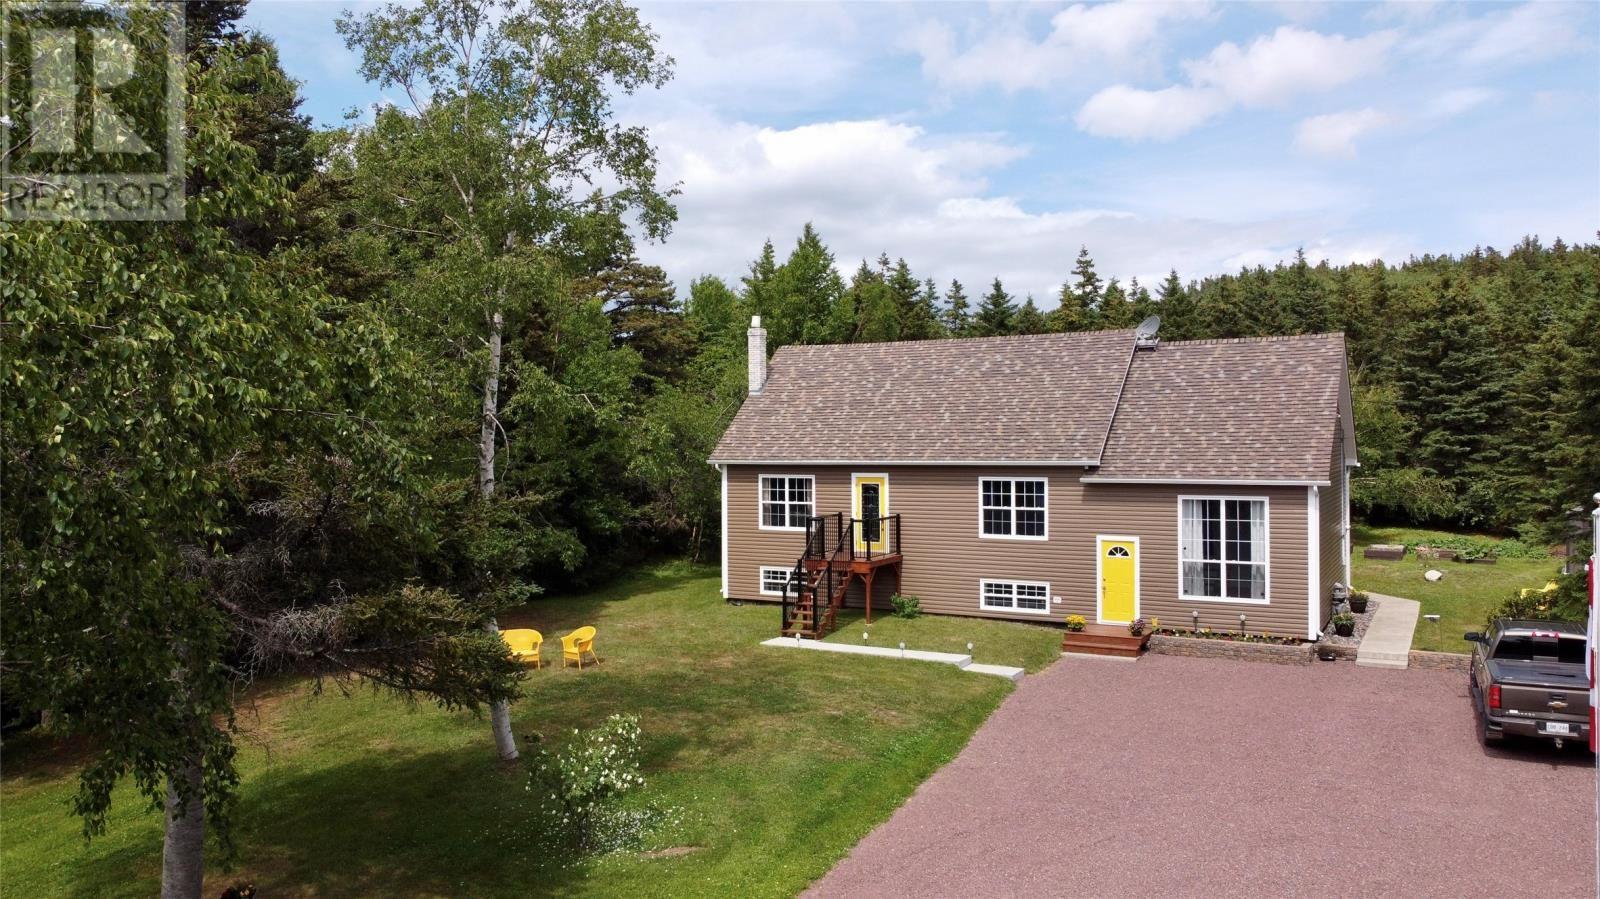 Main Photo: 18-22 Bight Road in Comfort Cove-Newstead: House for sale : MLS®# 1233676